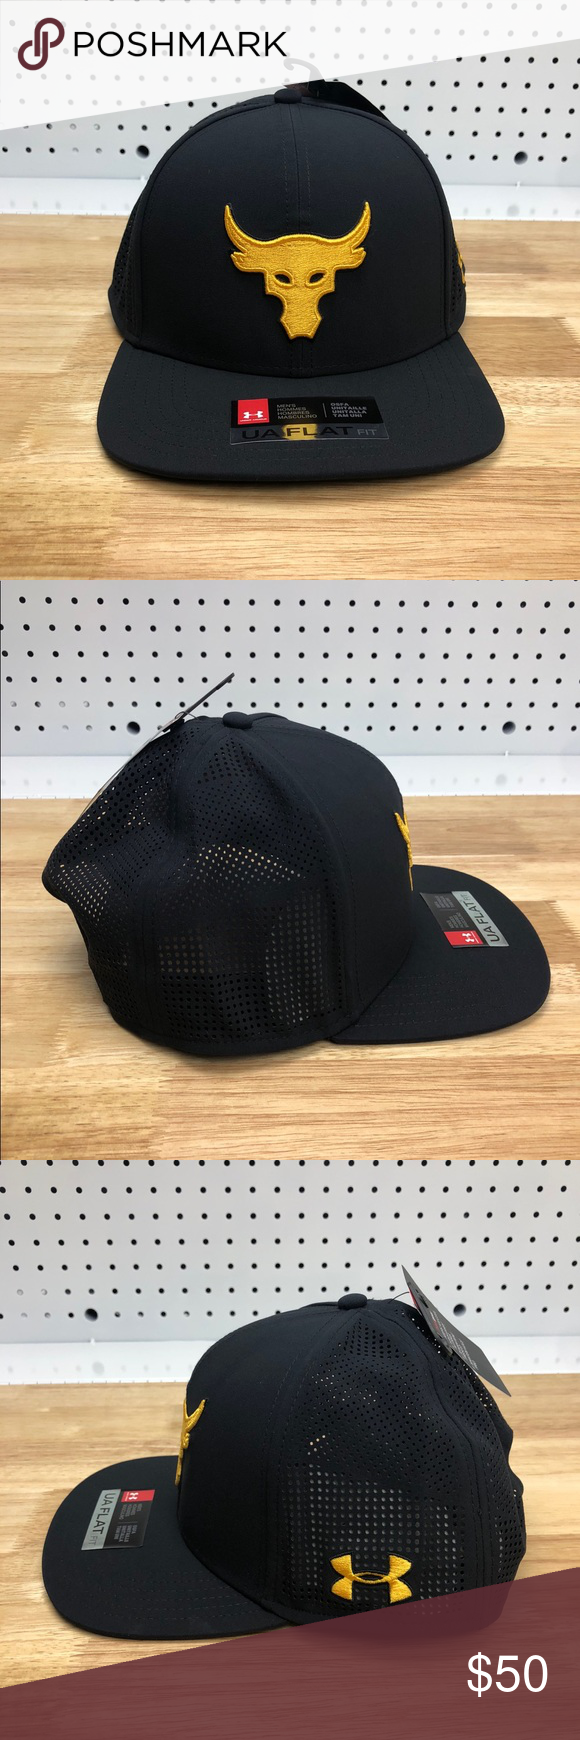 quality design fbe22 87f9d ROCK Under Armour X Project Rock Supervent Hat The ROCK Under Armour UA X  Project Rock